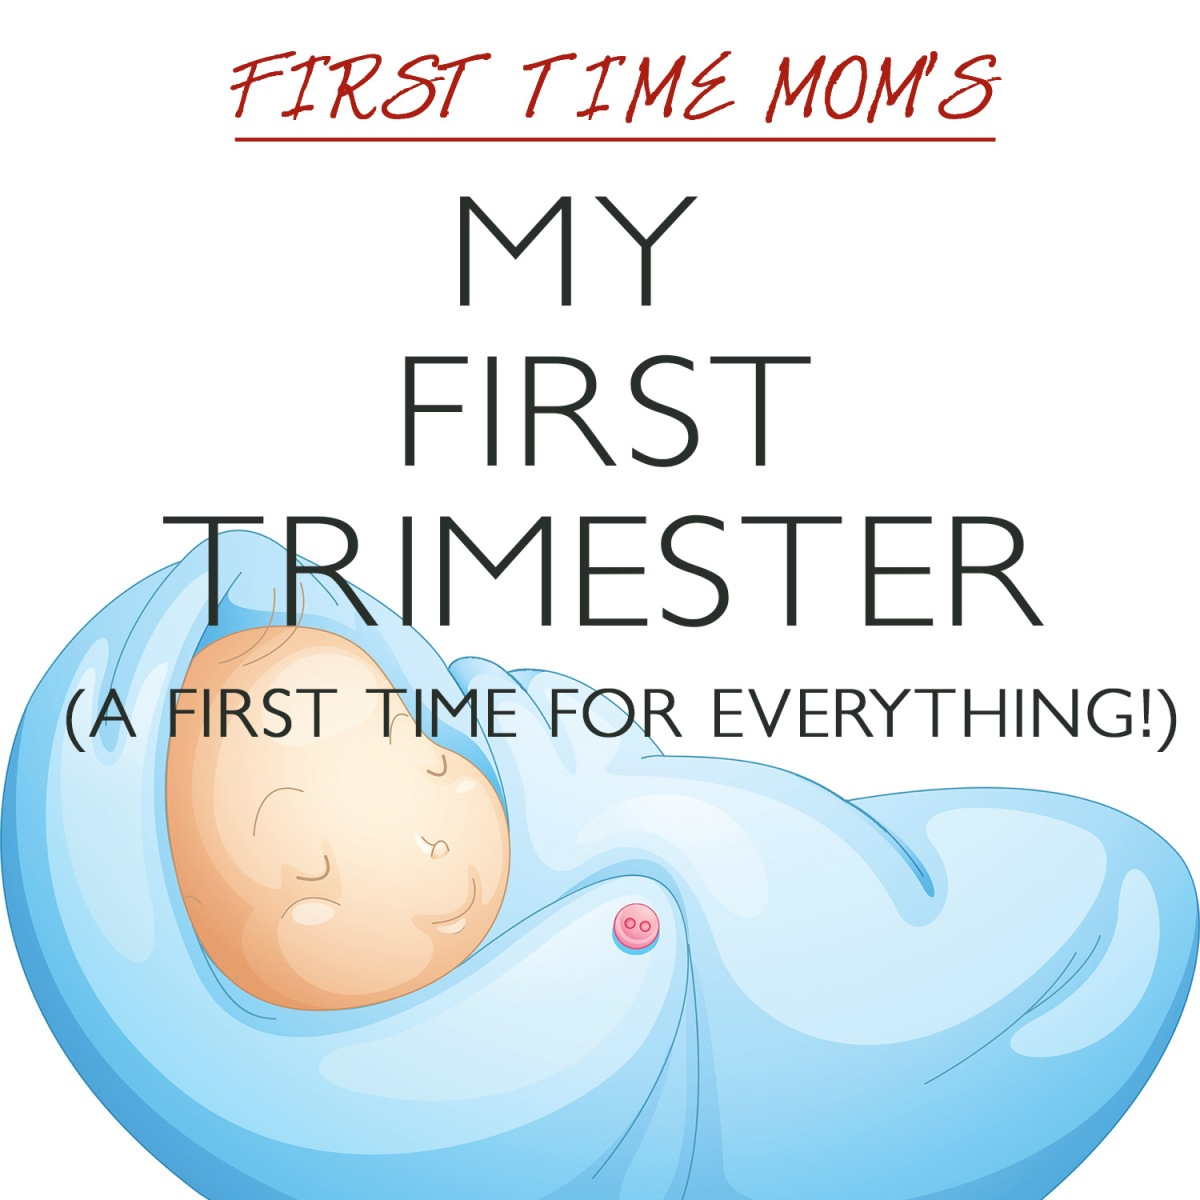 My First Trimester Checklist